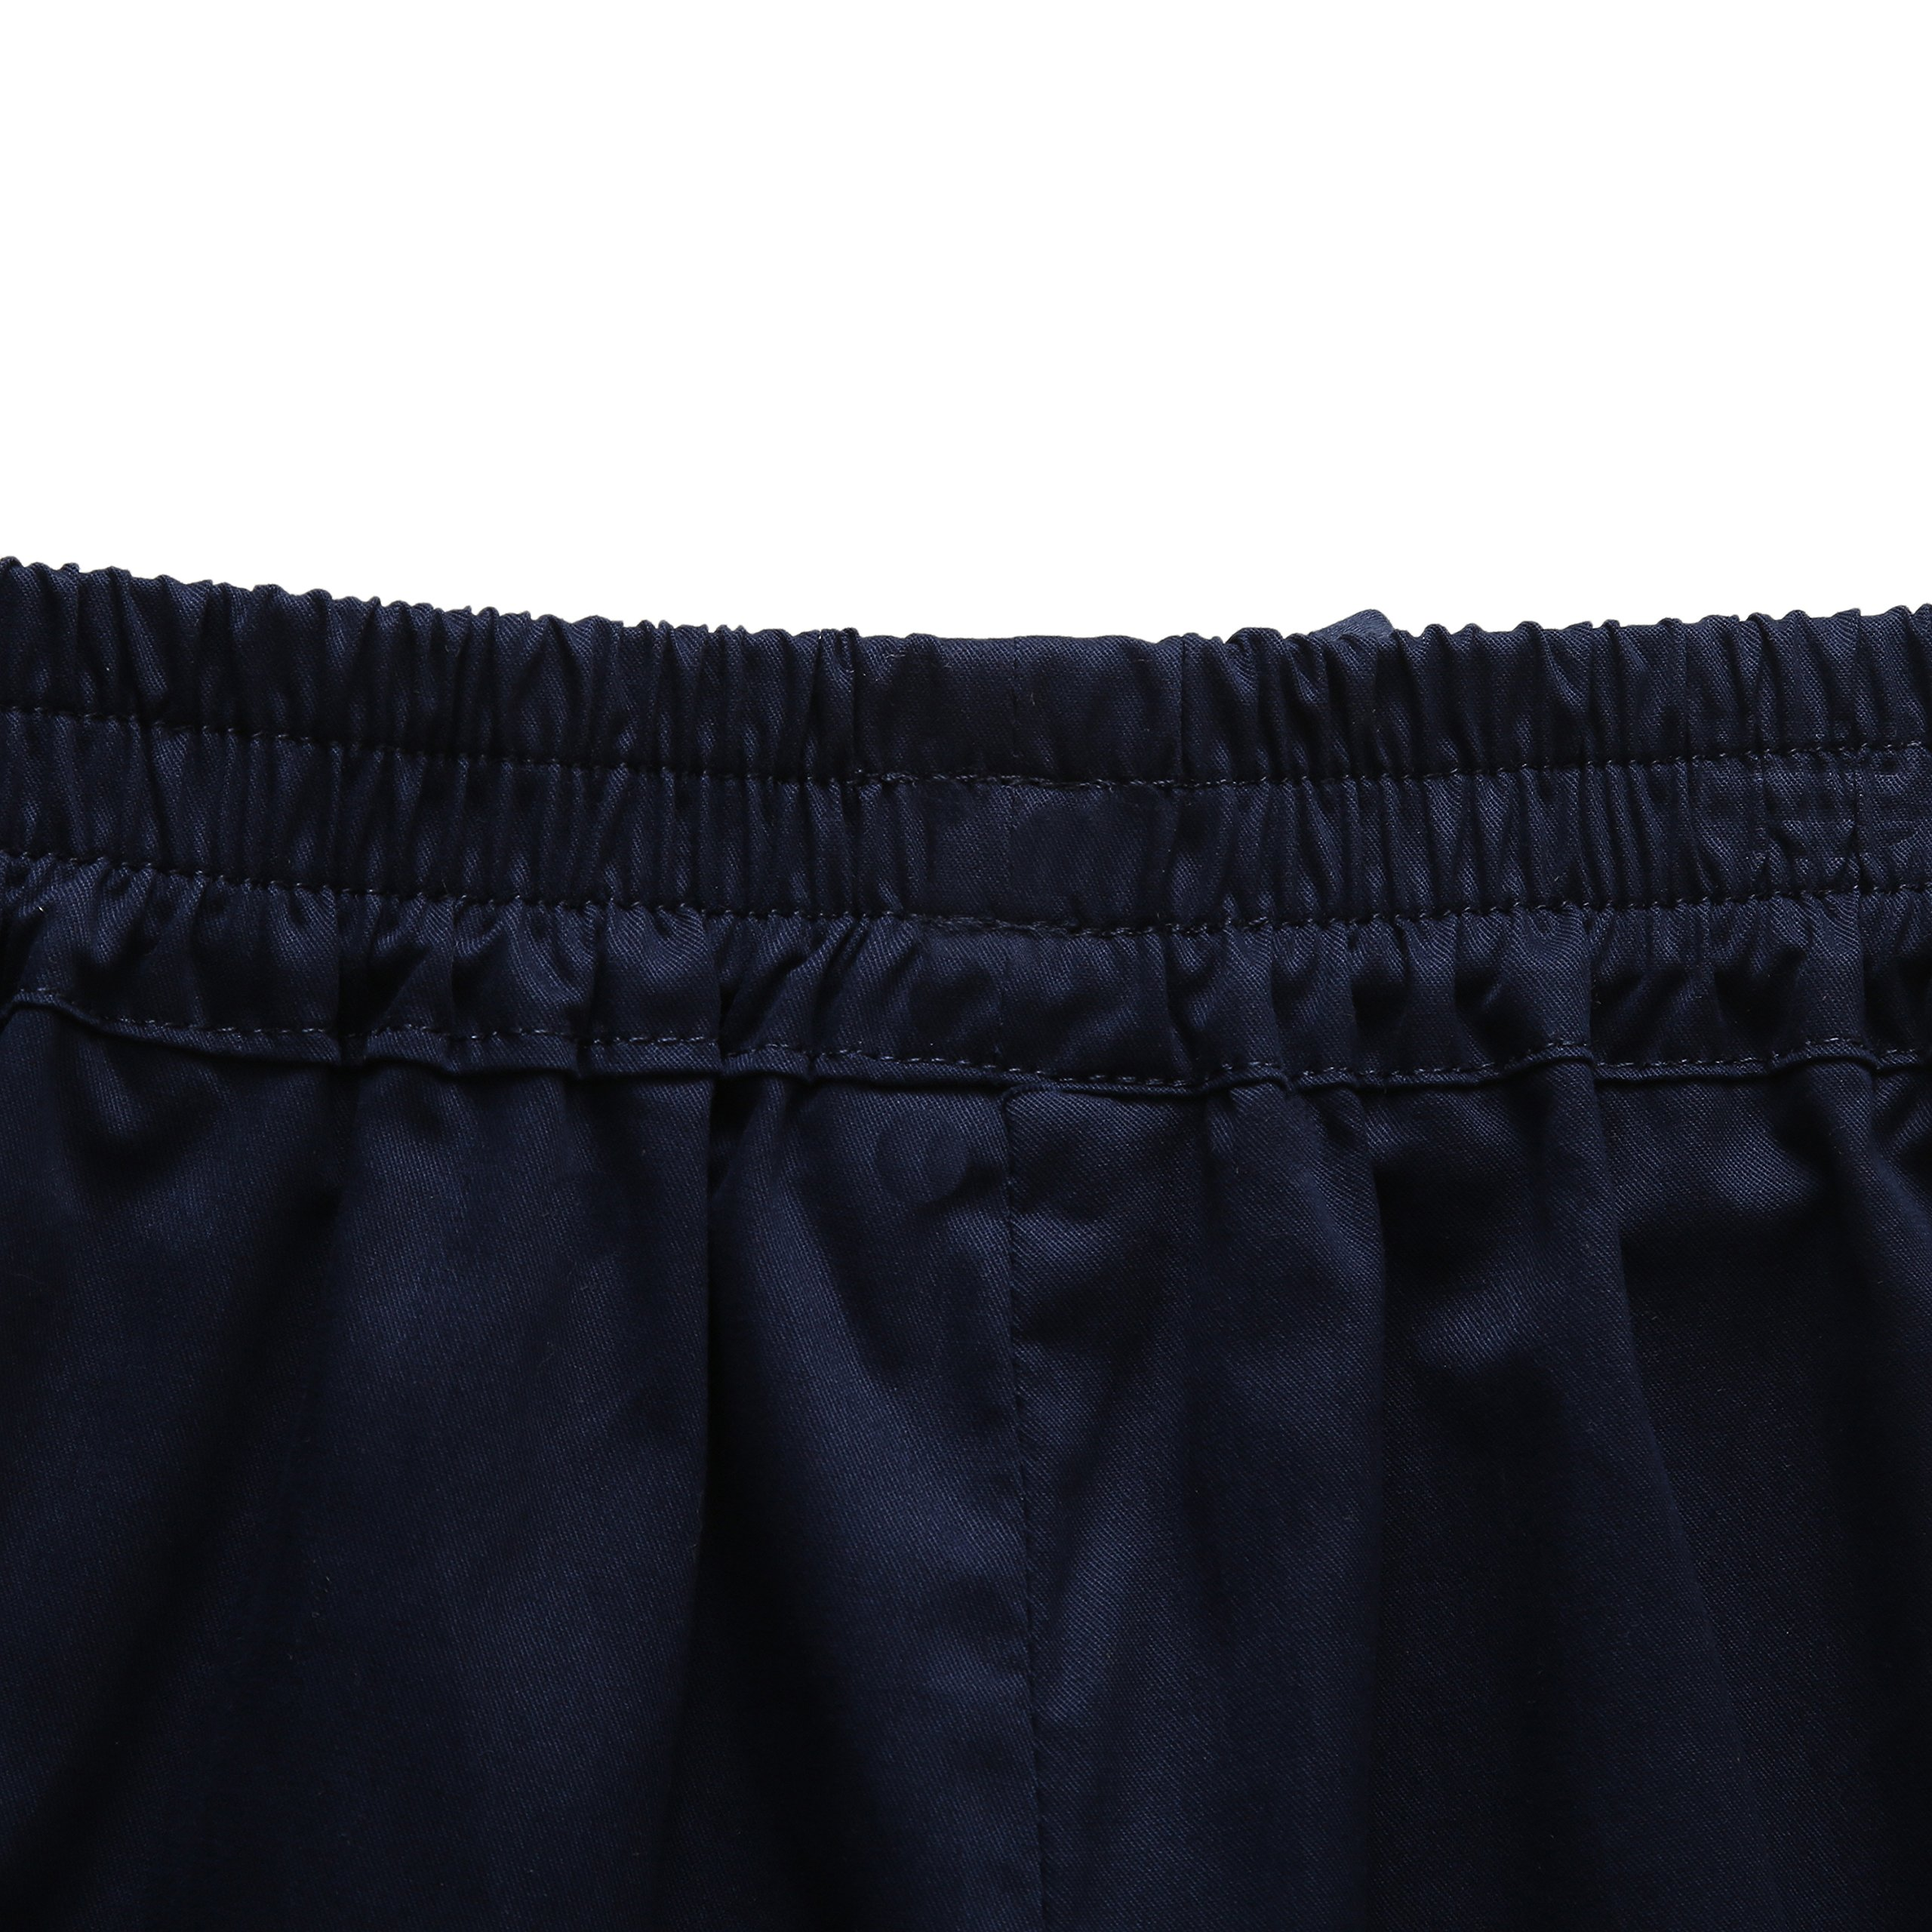 Richie House Big Girls' Summer Short Pants with Bow RH2288-A-12 by Richie House (Image #3)